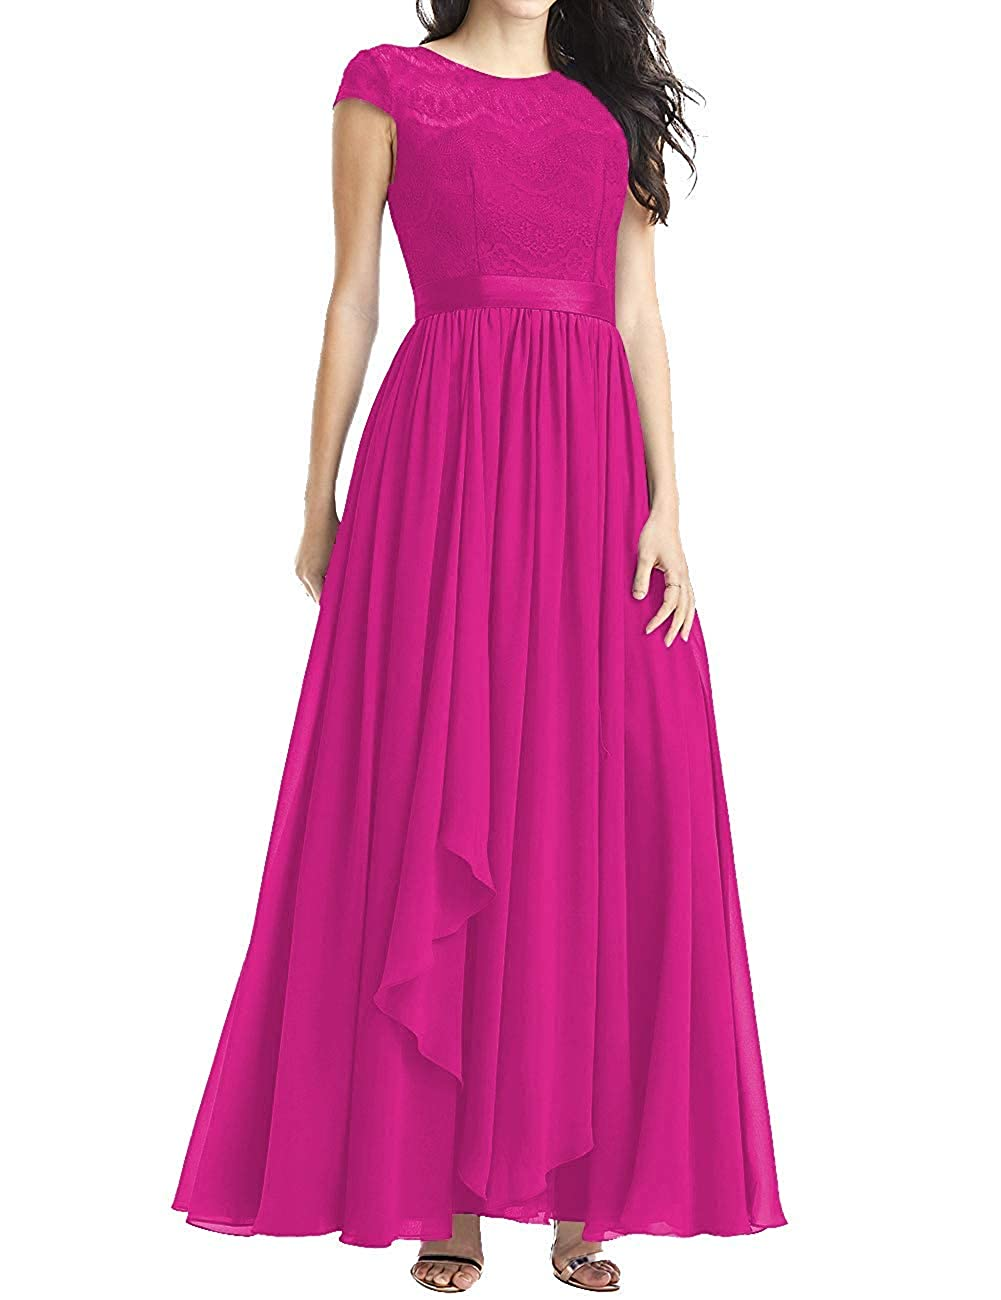 Fuchsia Mother of The Bride Dresses Plus Size Evening Dresses with Sleeves Formal Gowns for Women Evening Dress